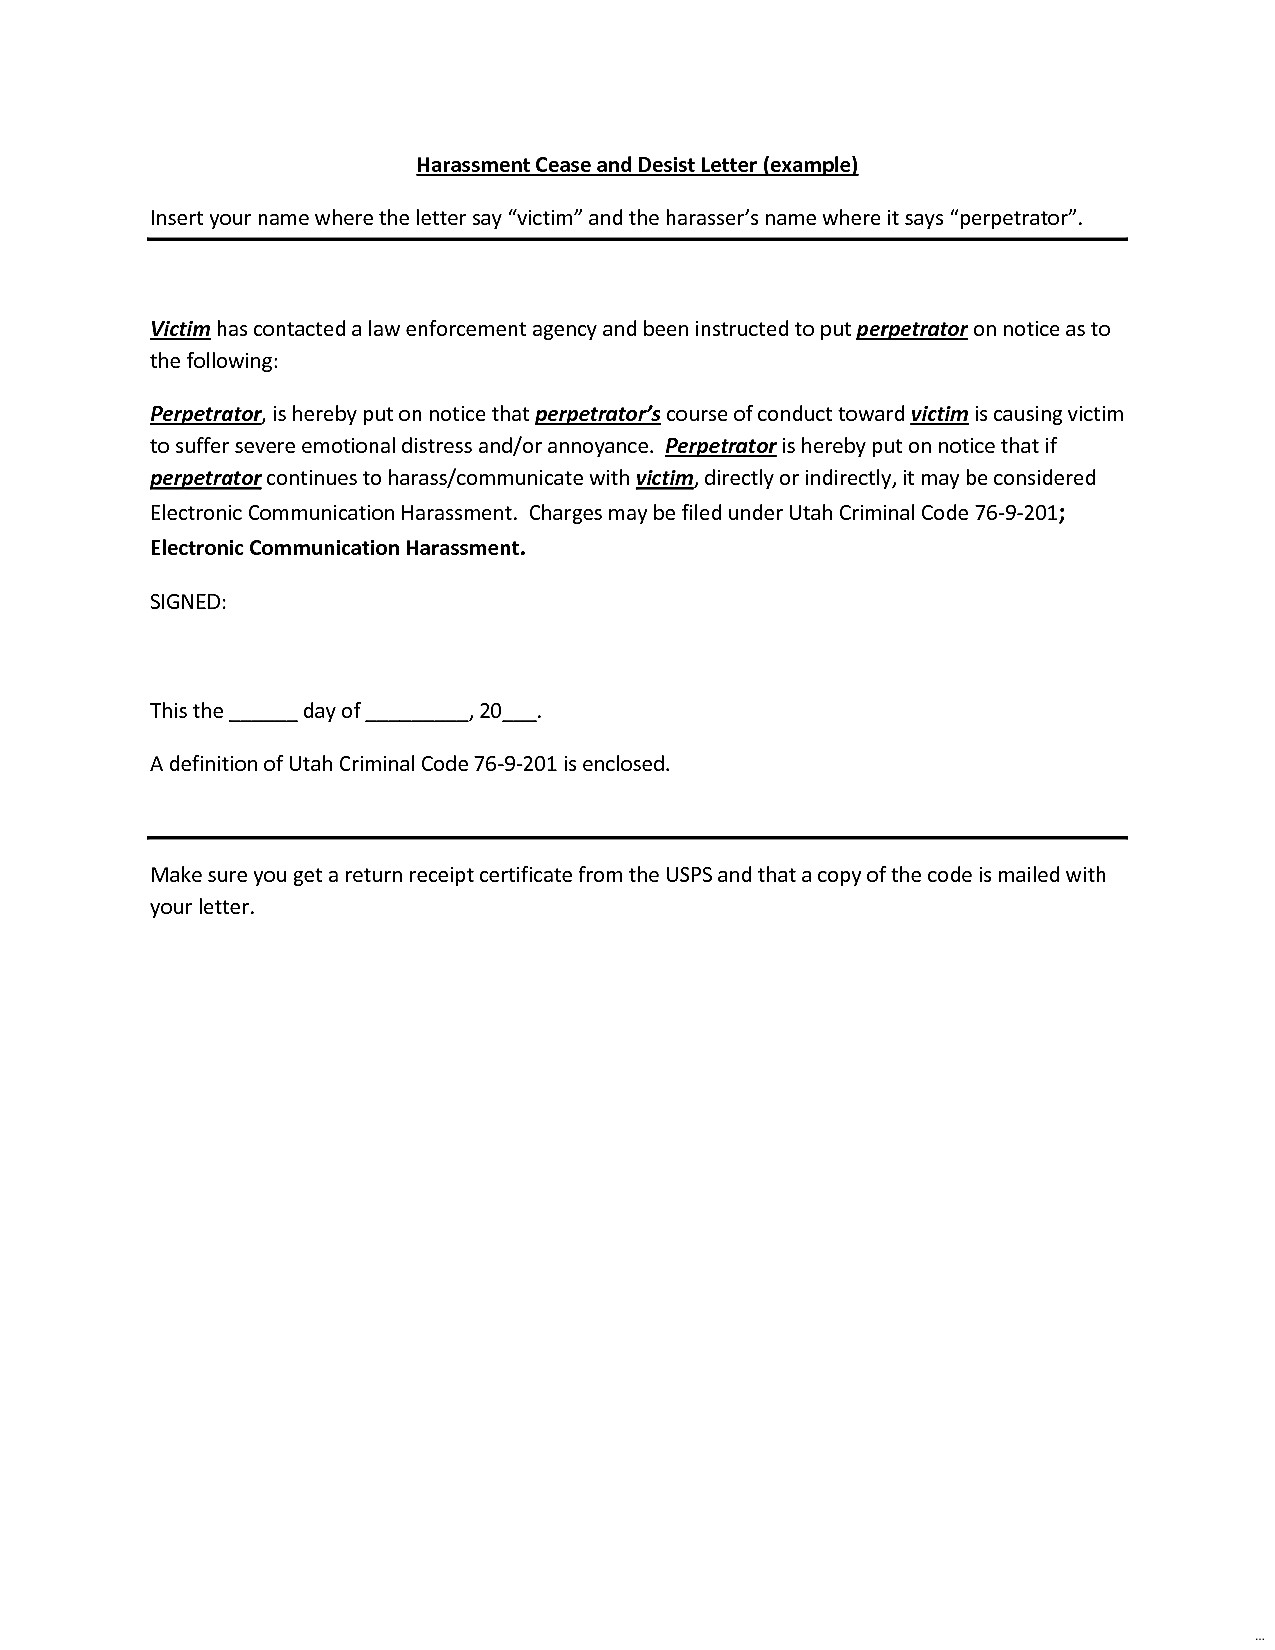 cease and desist letter harassment template Collection-free cease and desist letter template for harassment 14-c